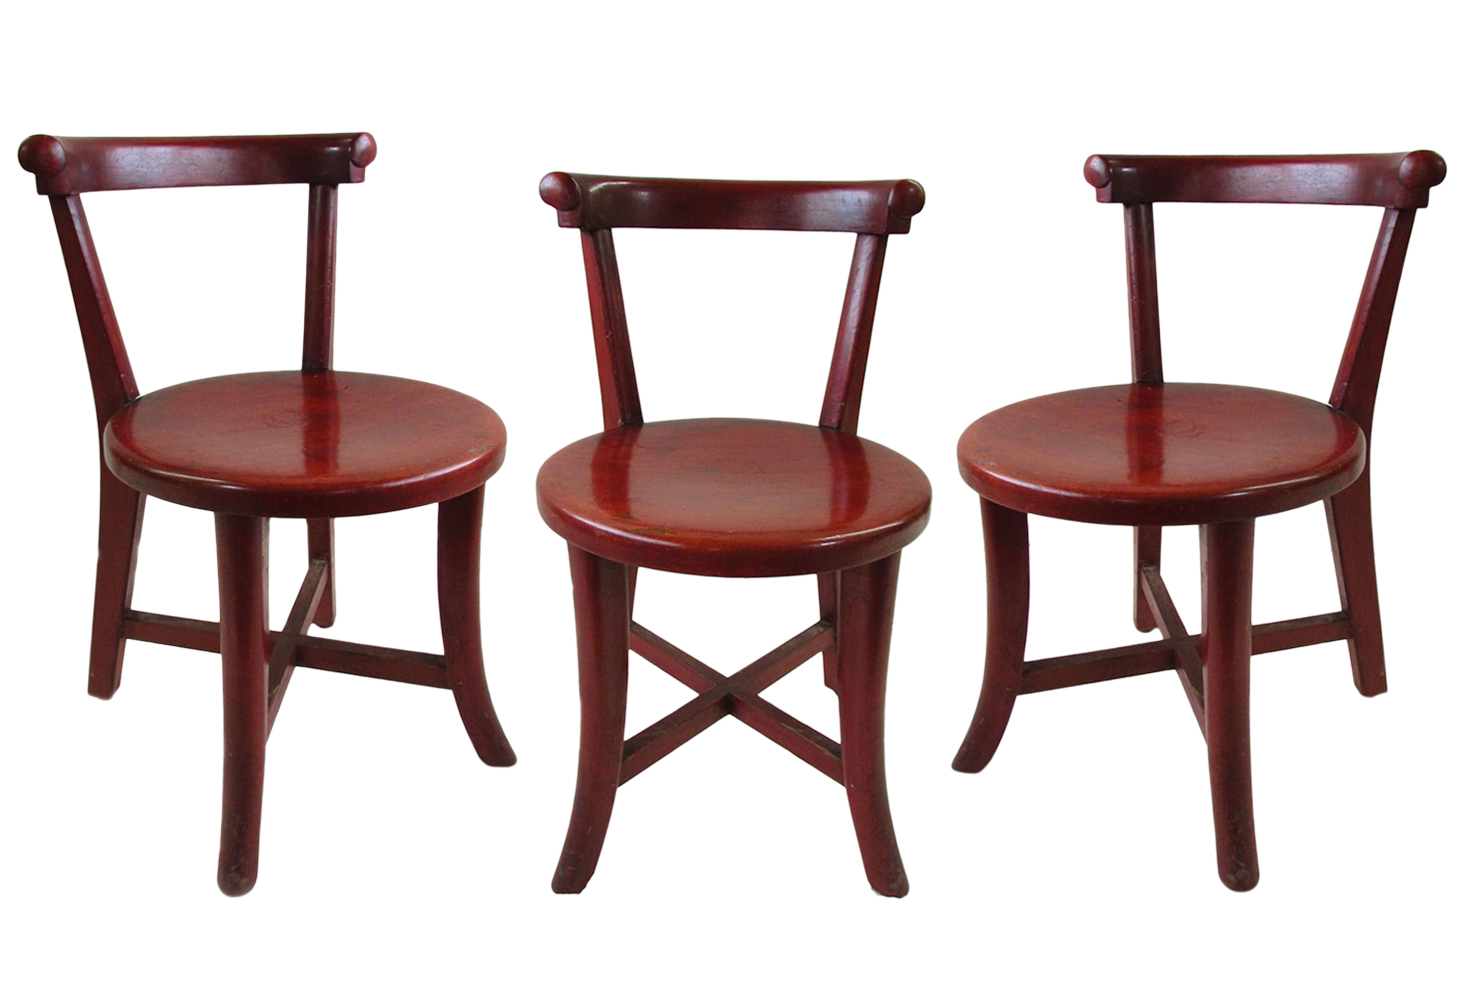 1930s French Mahogany Chairs Set of 3 Omero Home : 1930s french mahogany chairs set 36 from www.omerohome.com size 1471 x 1000 jpeg 348kB